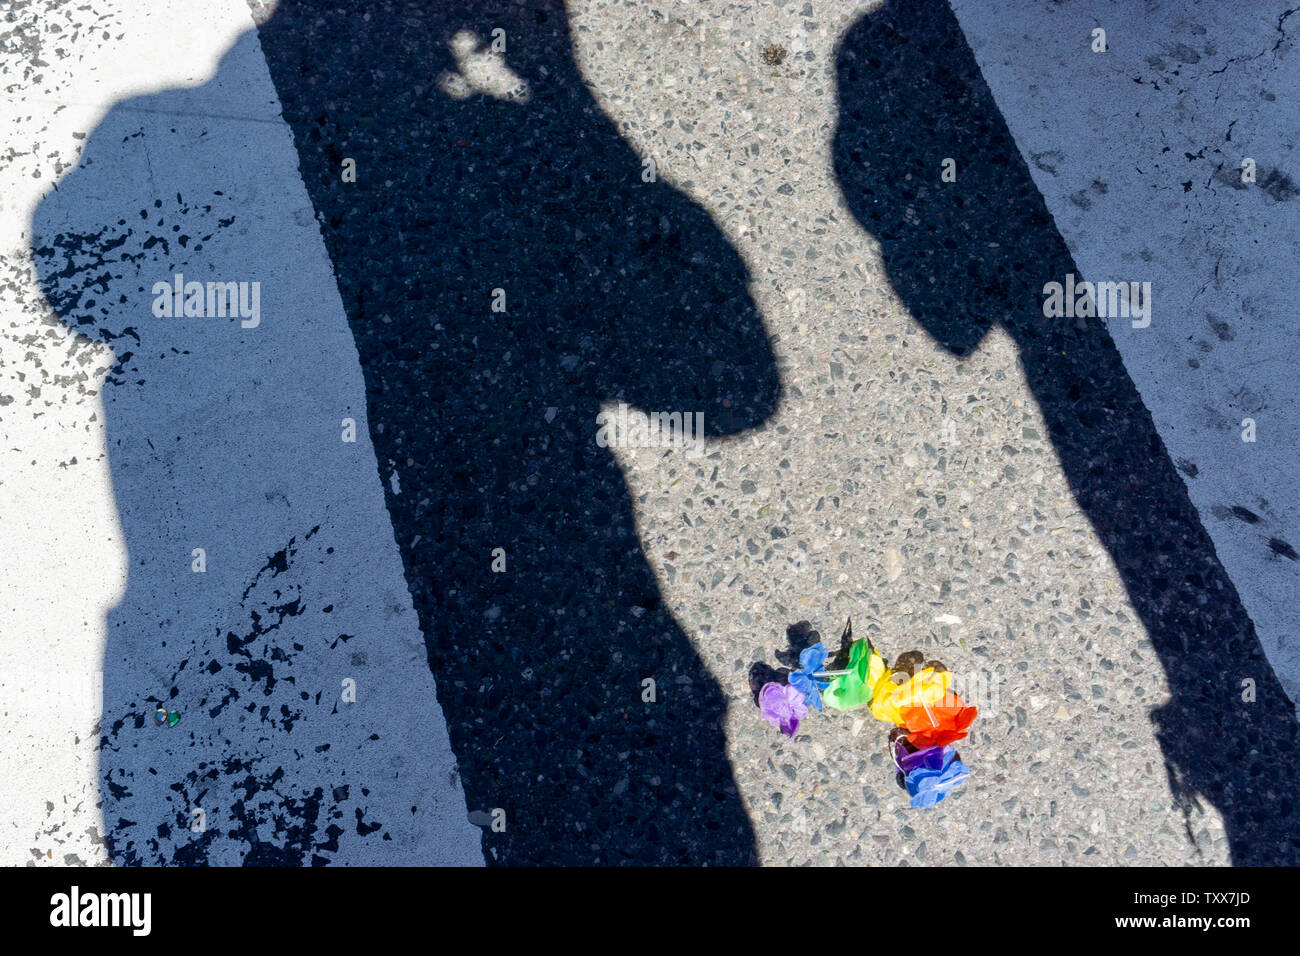 I found this lost Pride rainbow coloured hand or head band lonely on the busy street waiting to be captured by my camera. - Stock Image